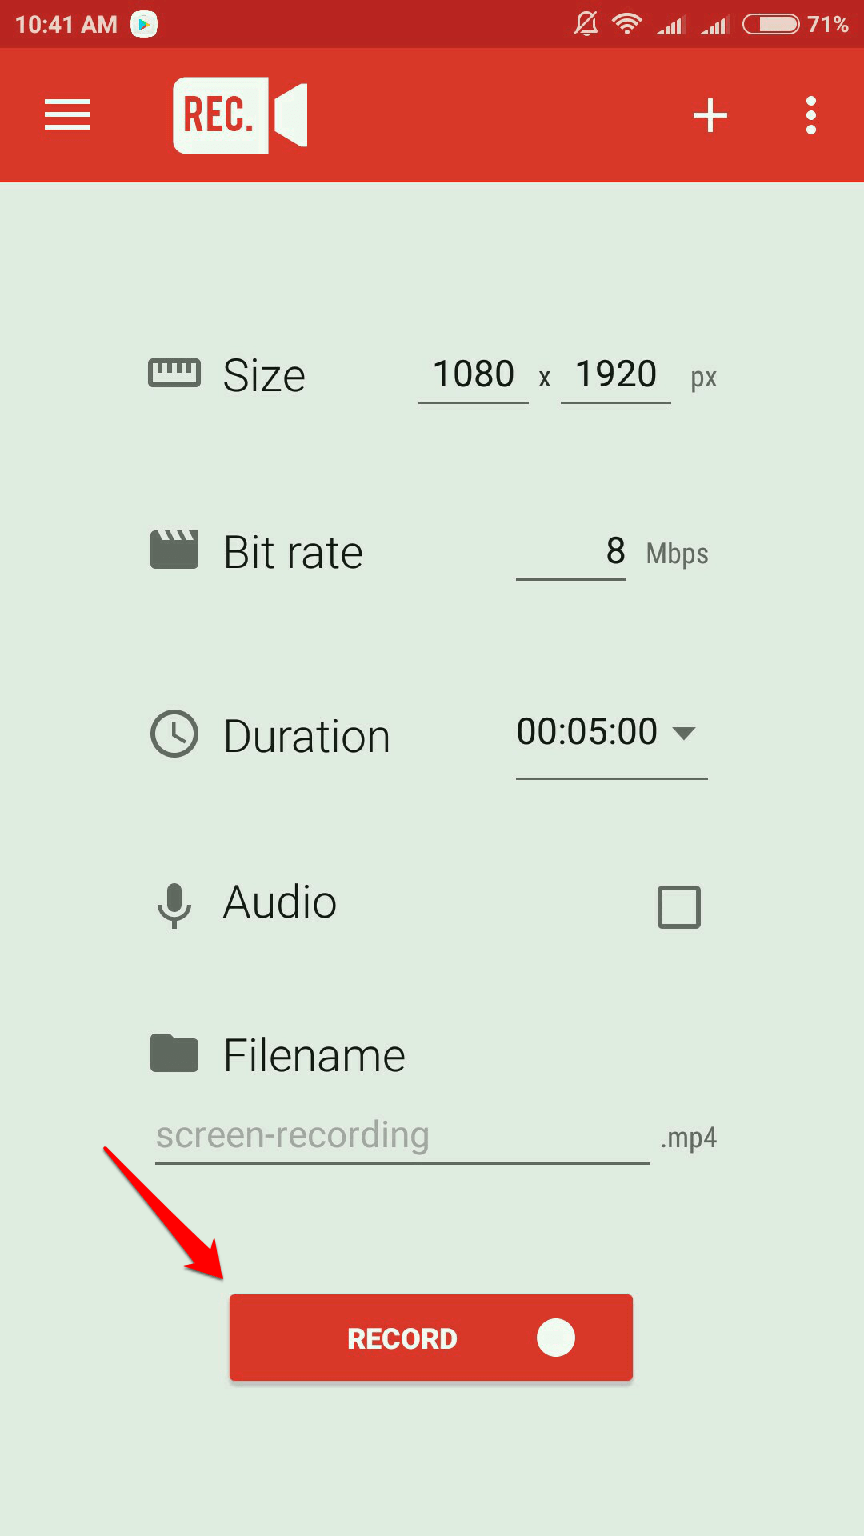 How To use Rec screen recorder on android phone to record screen